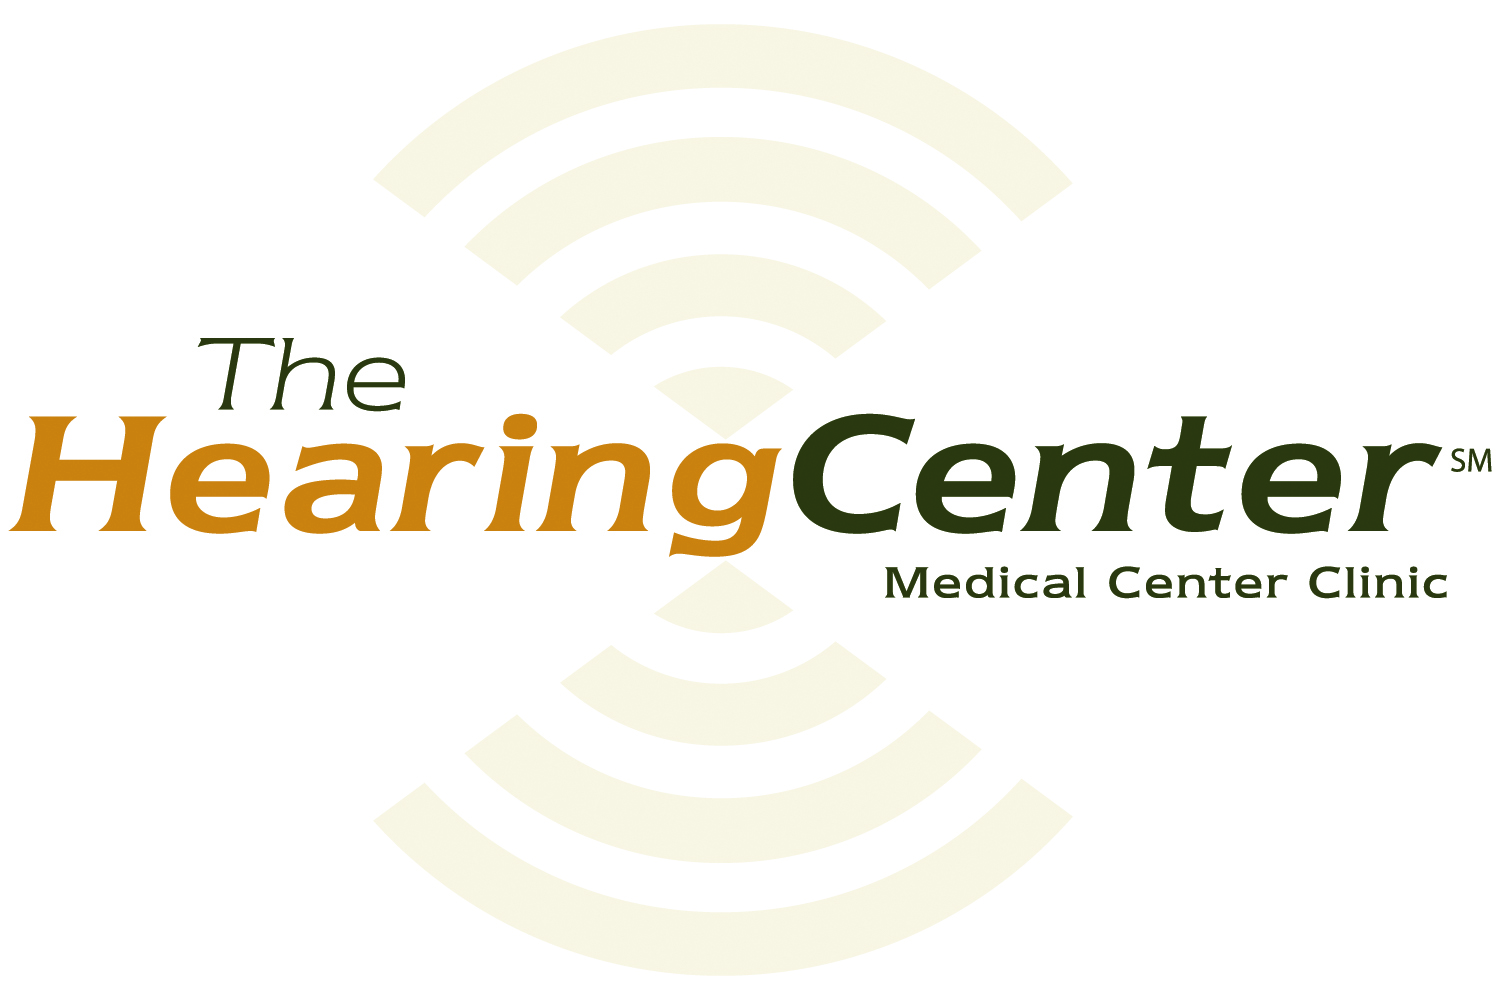 3. The Hearing Center (Silver)